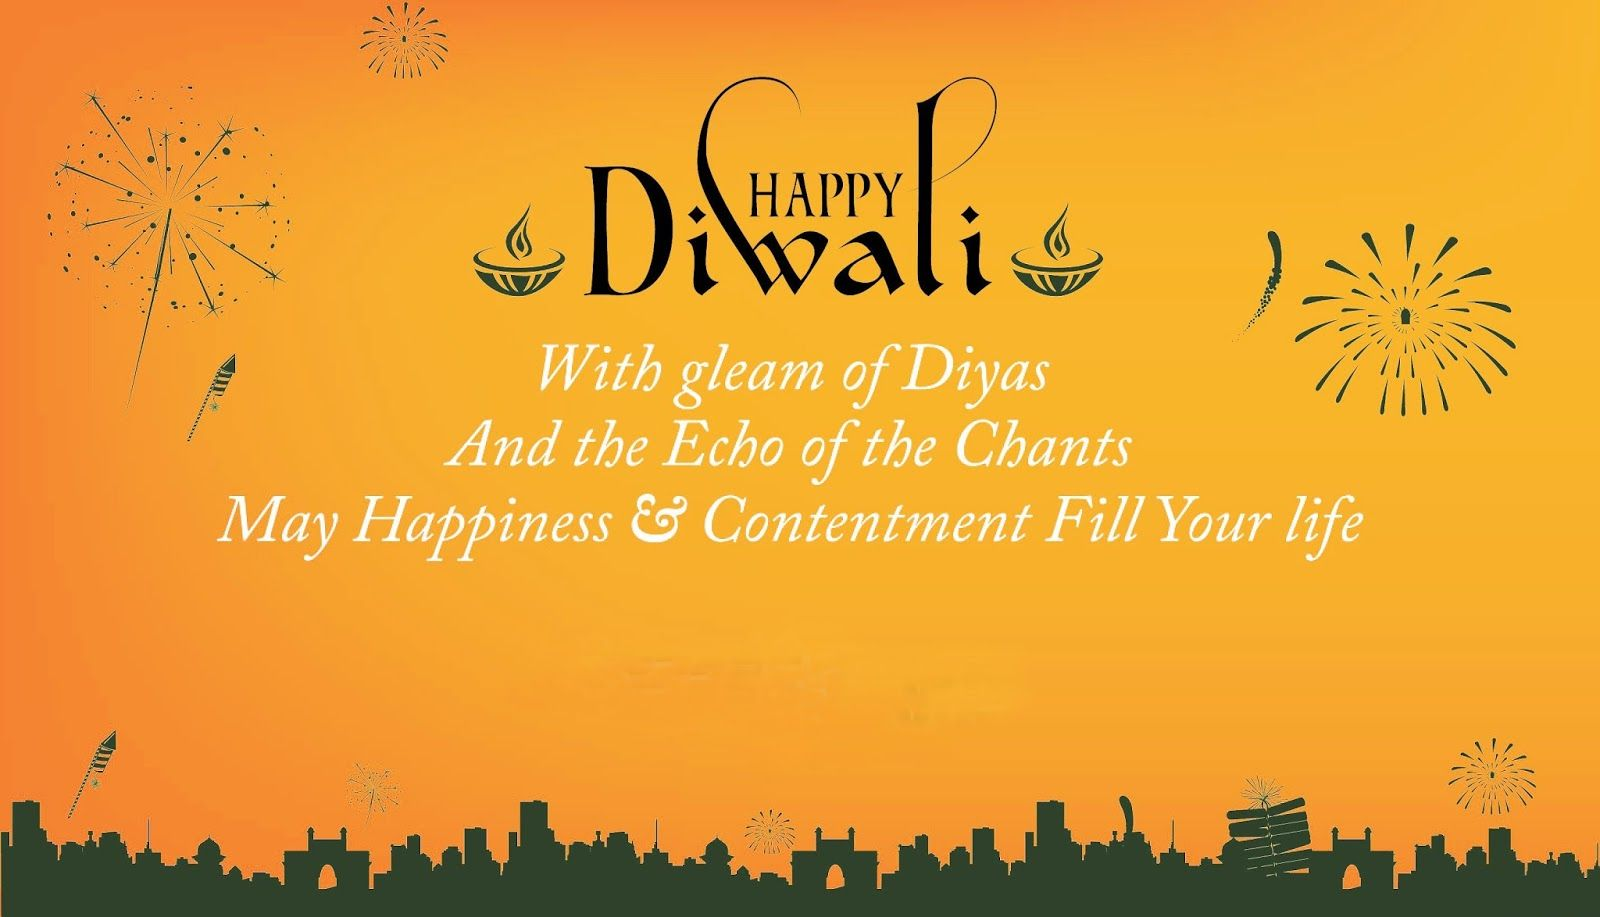 Download free diwali greetings 2015 happy diwali pinterest download free diwali greetings 2015 m4hsunfo